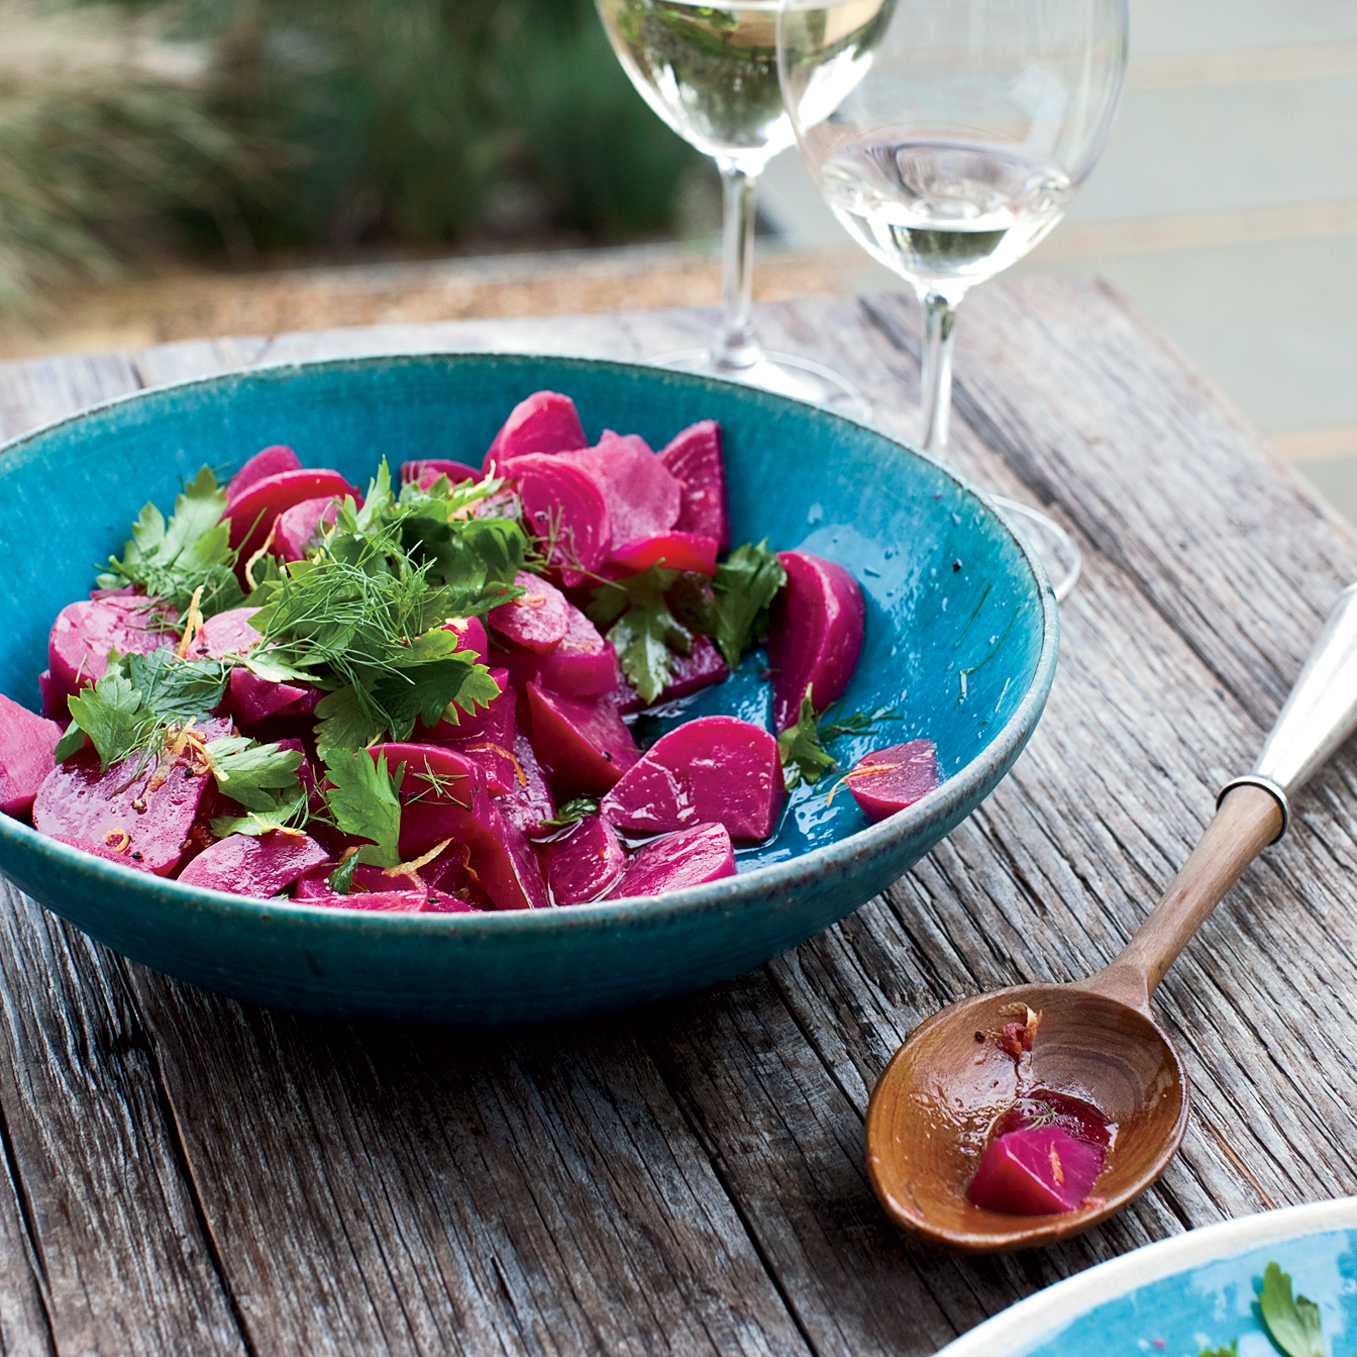 Medlock Ames winery: pickled Chioggia beets